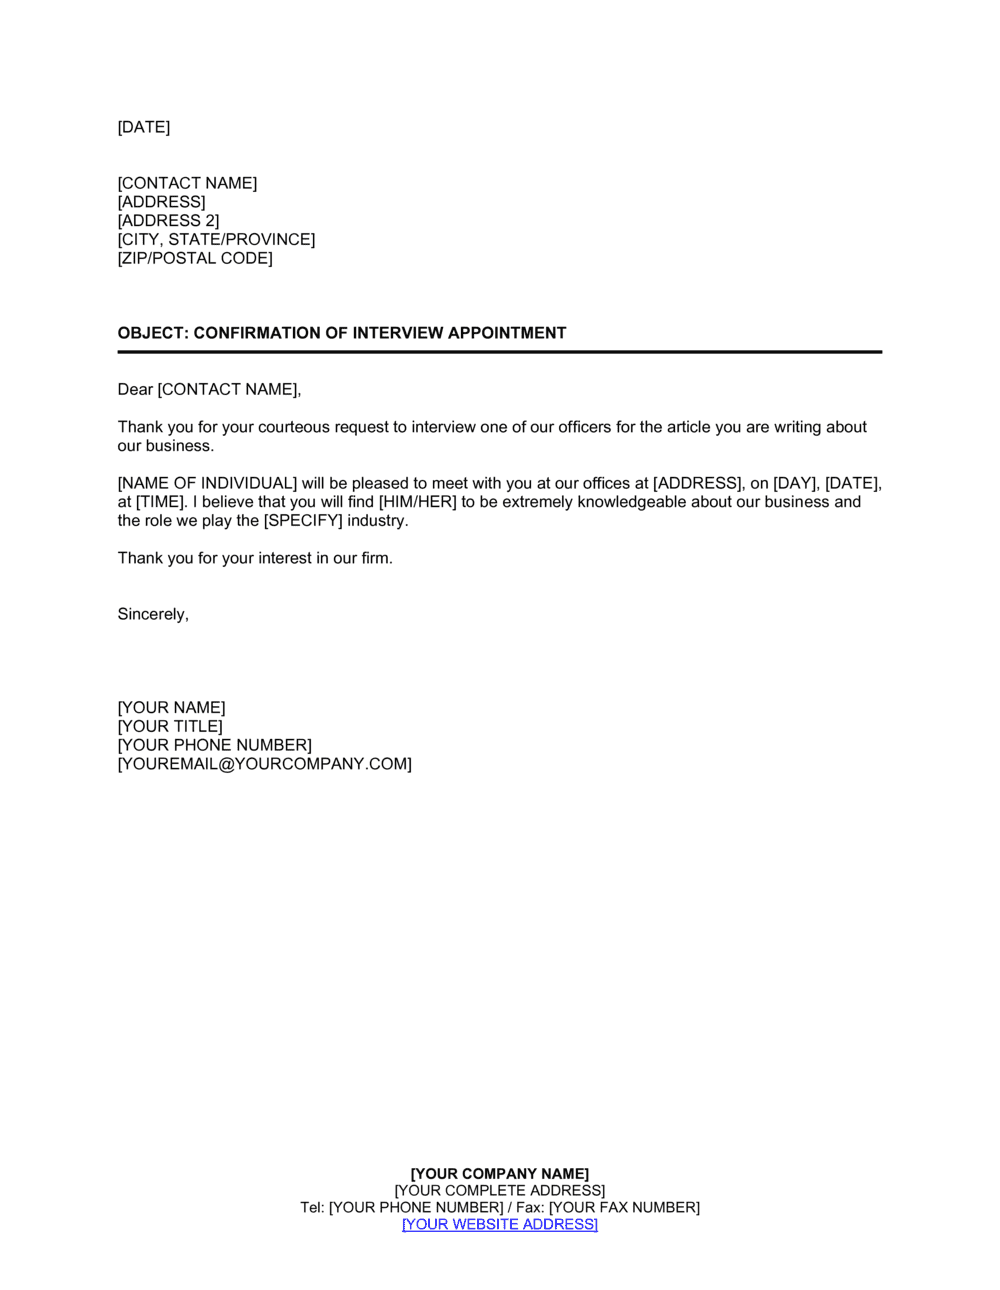 Business-in-a-Box's Confirmation of Interview Appointment Template